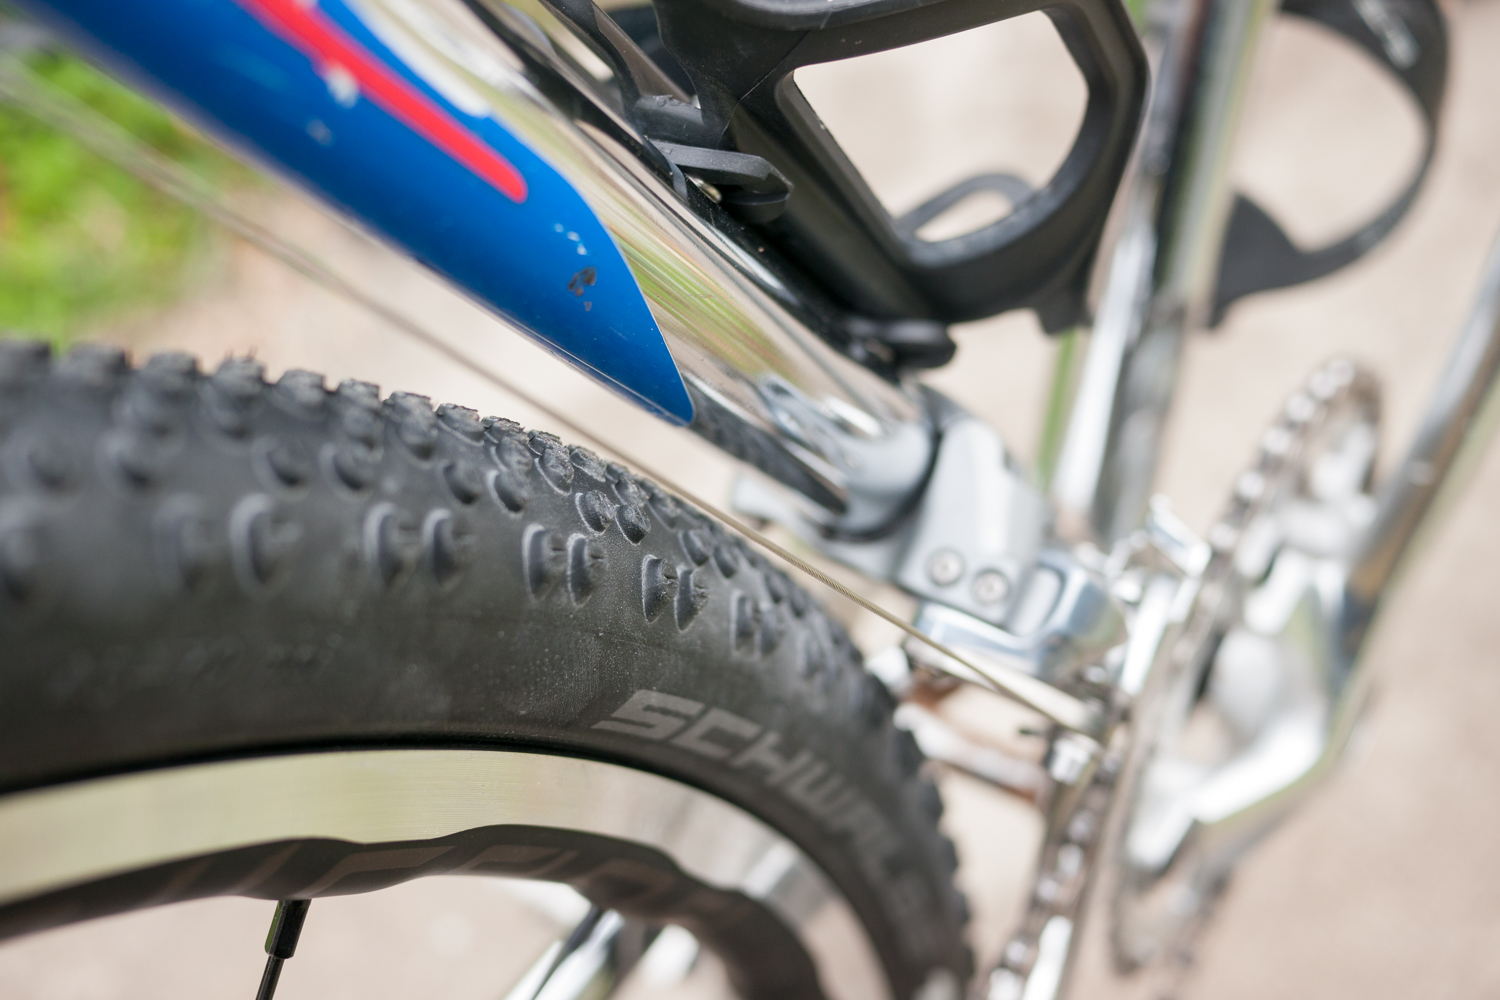 Schwalbe G One Bite clearance